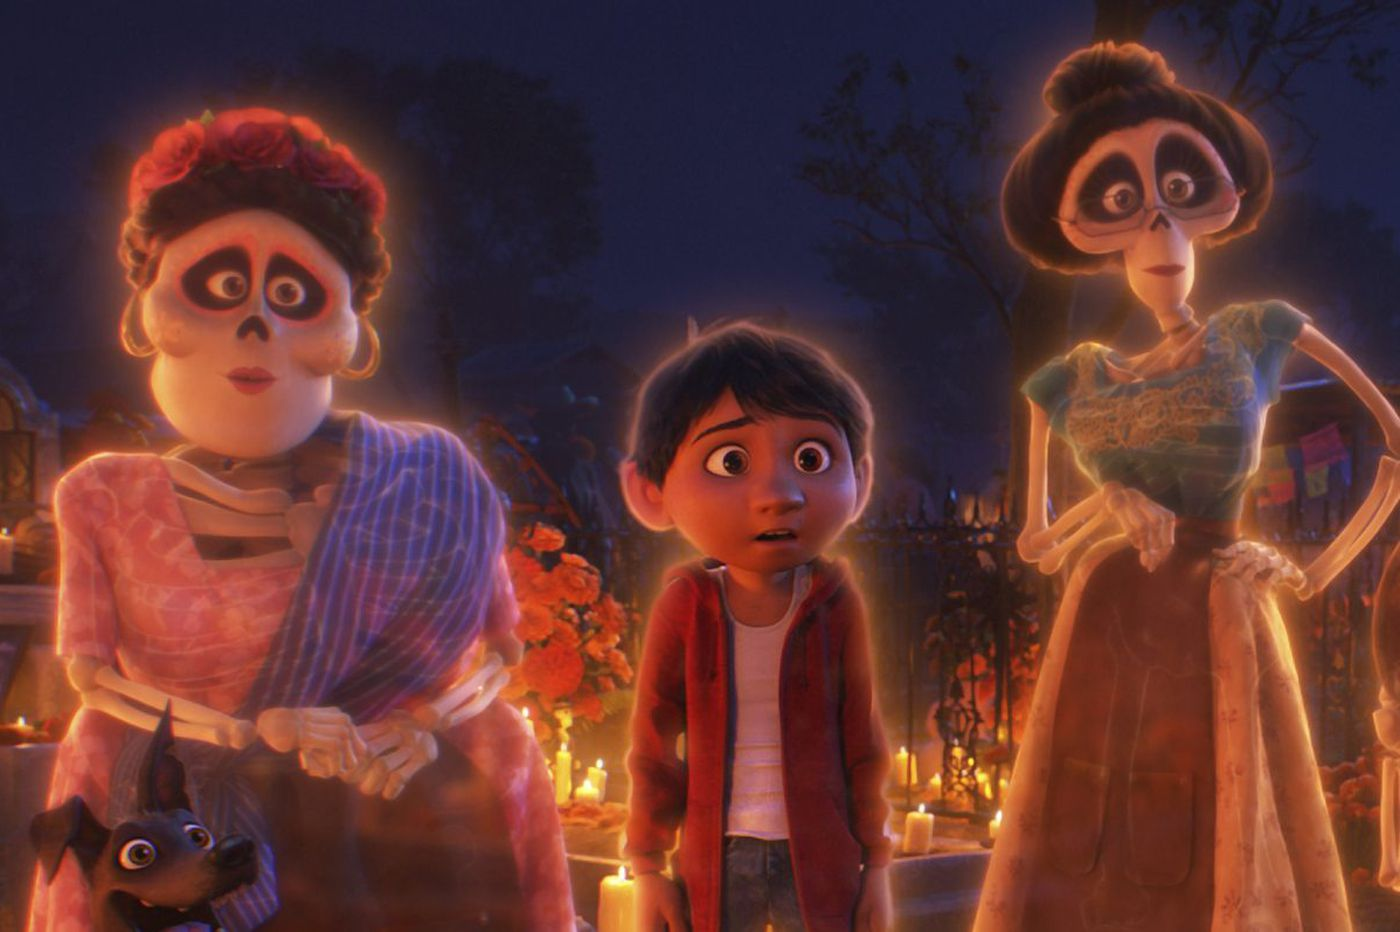 'Coco' is a return to form for Pixar (for better and for worse)